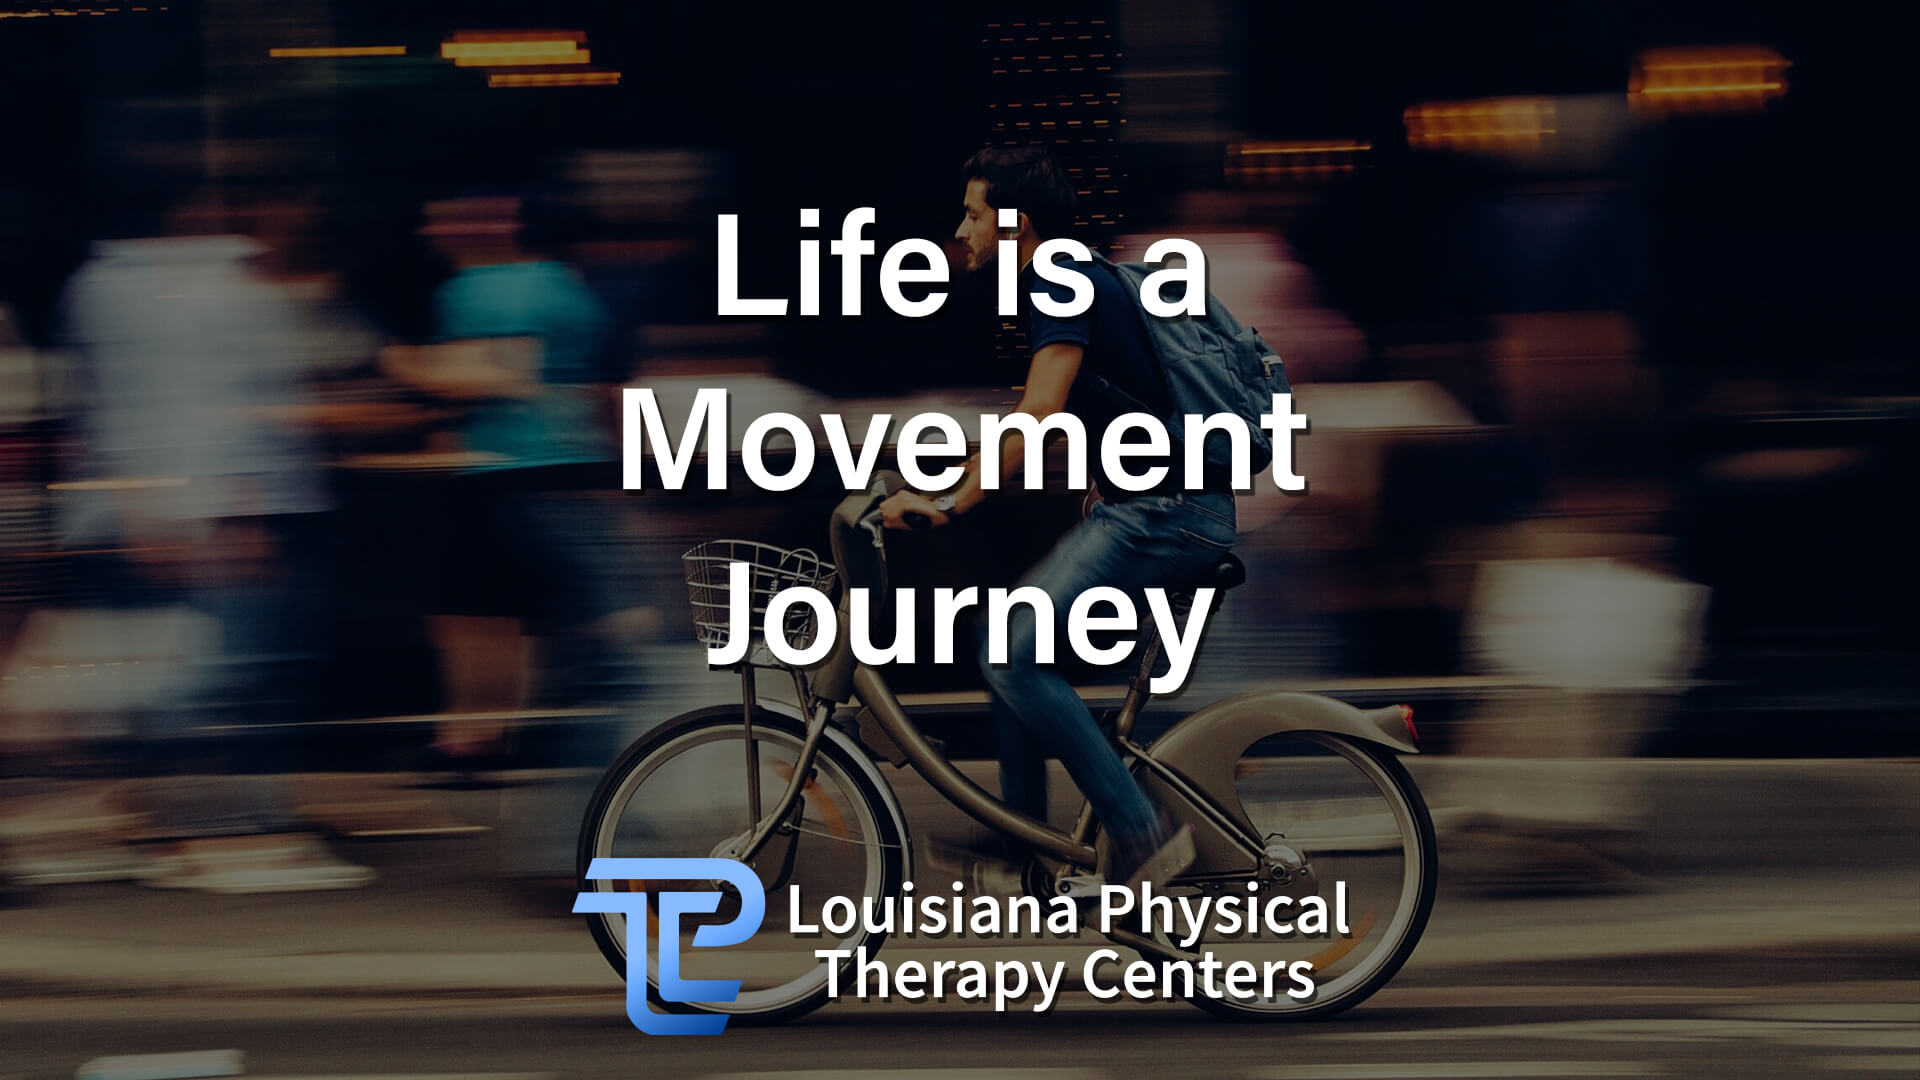 Life is a Movement Journey